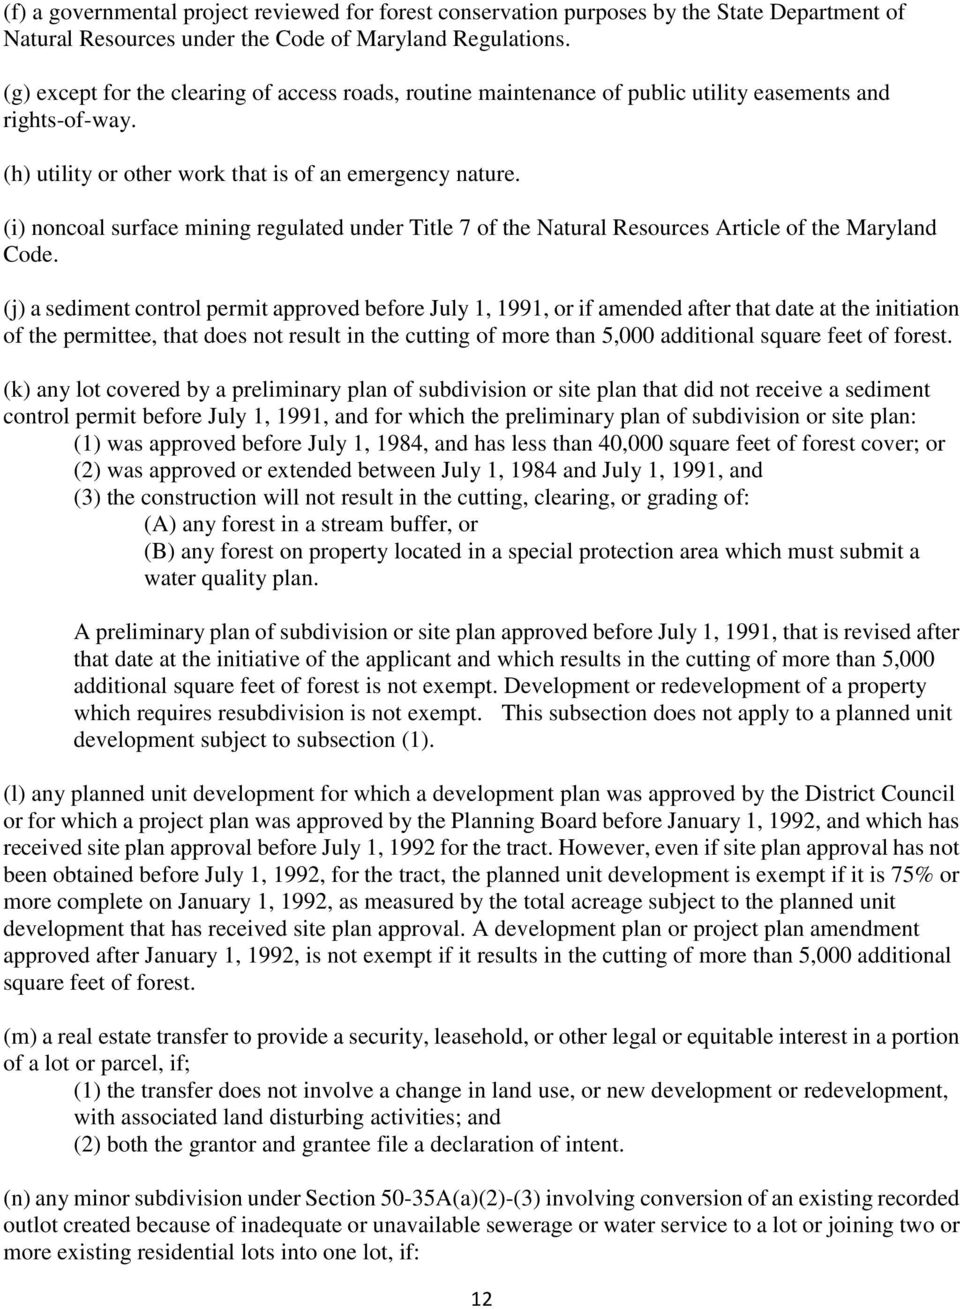 (i) noncoal surface mining regulated under Title 7 of the Natural Resources Article of the Maryland Code.